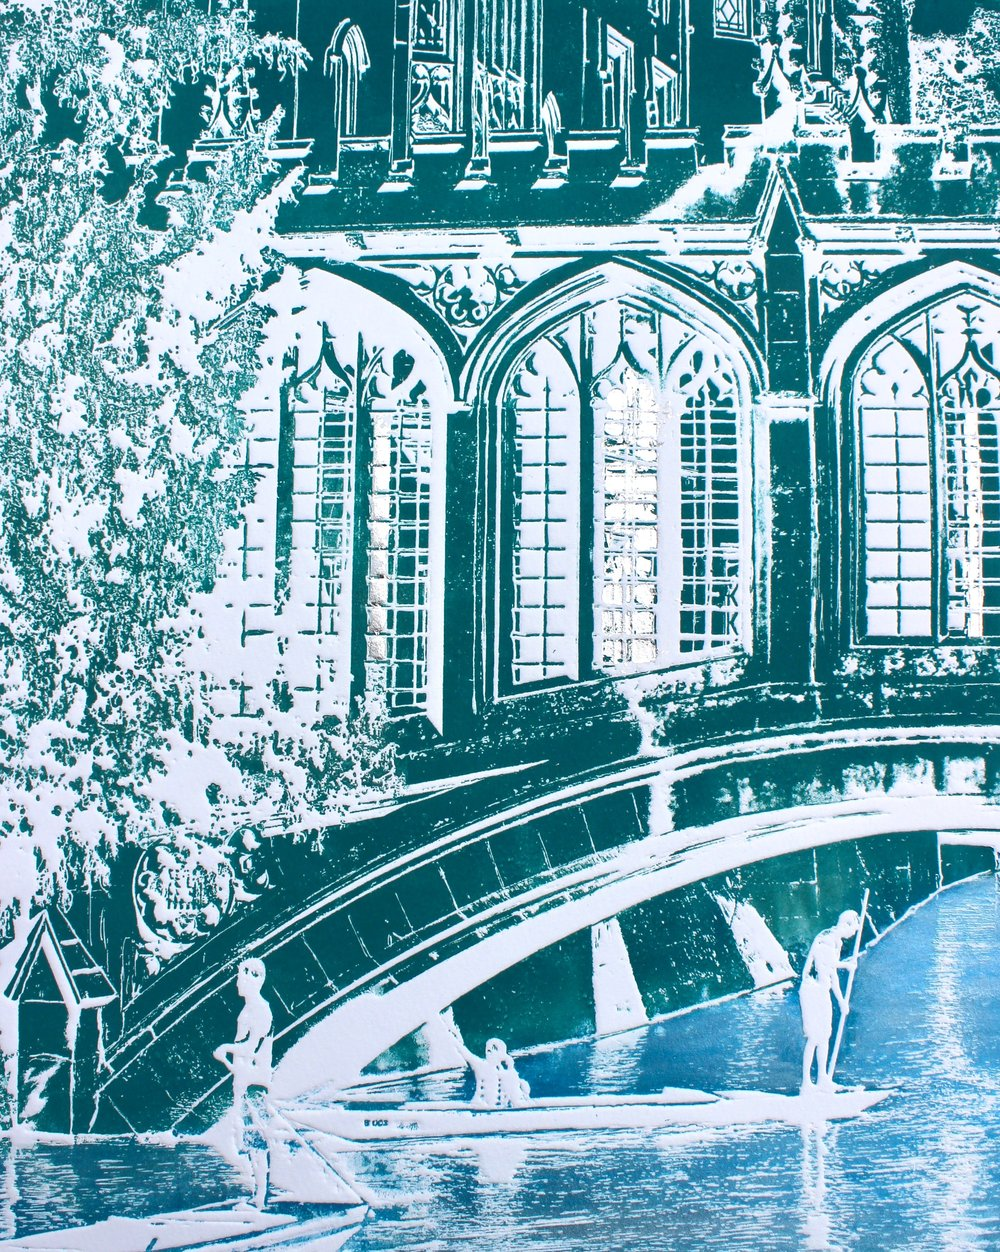 Sighs of Cambridge ed19   solar plate etching   57 x 67 cm  £295 framed